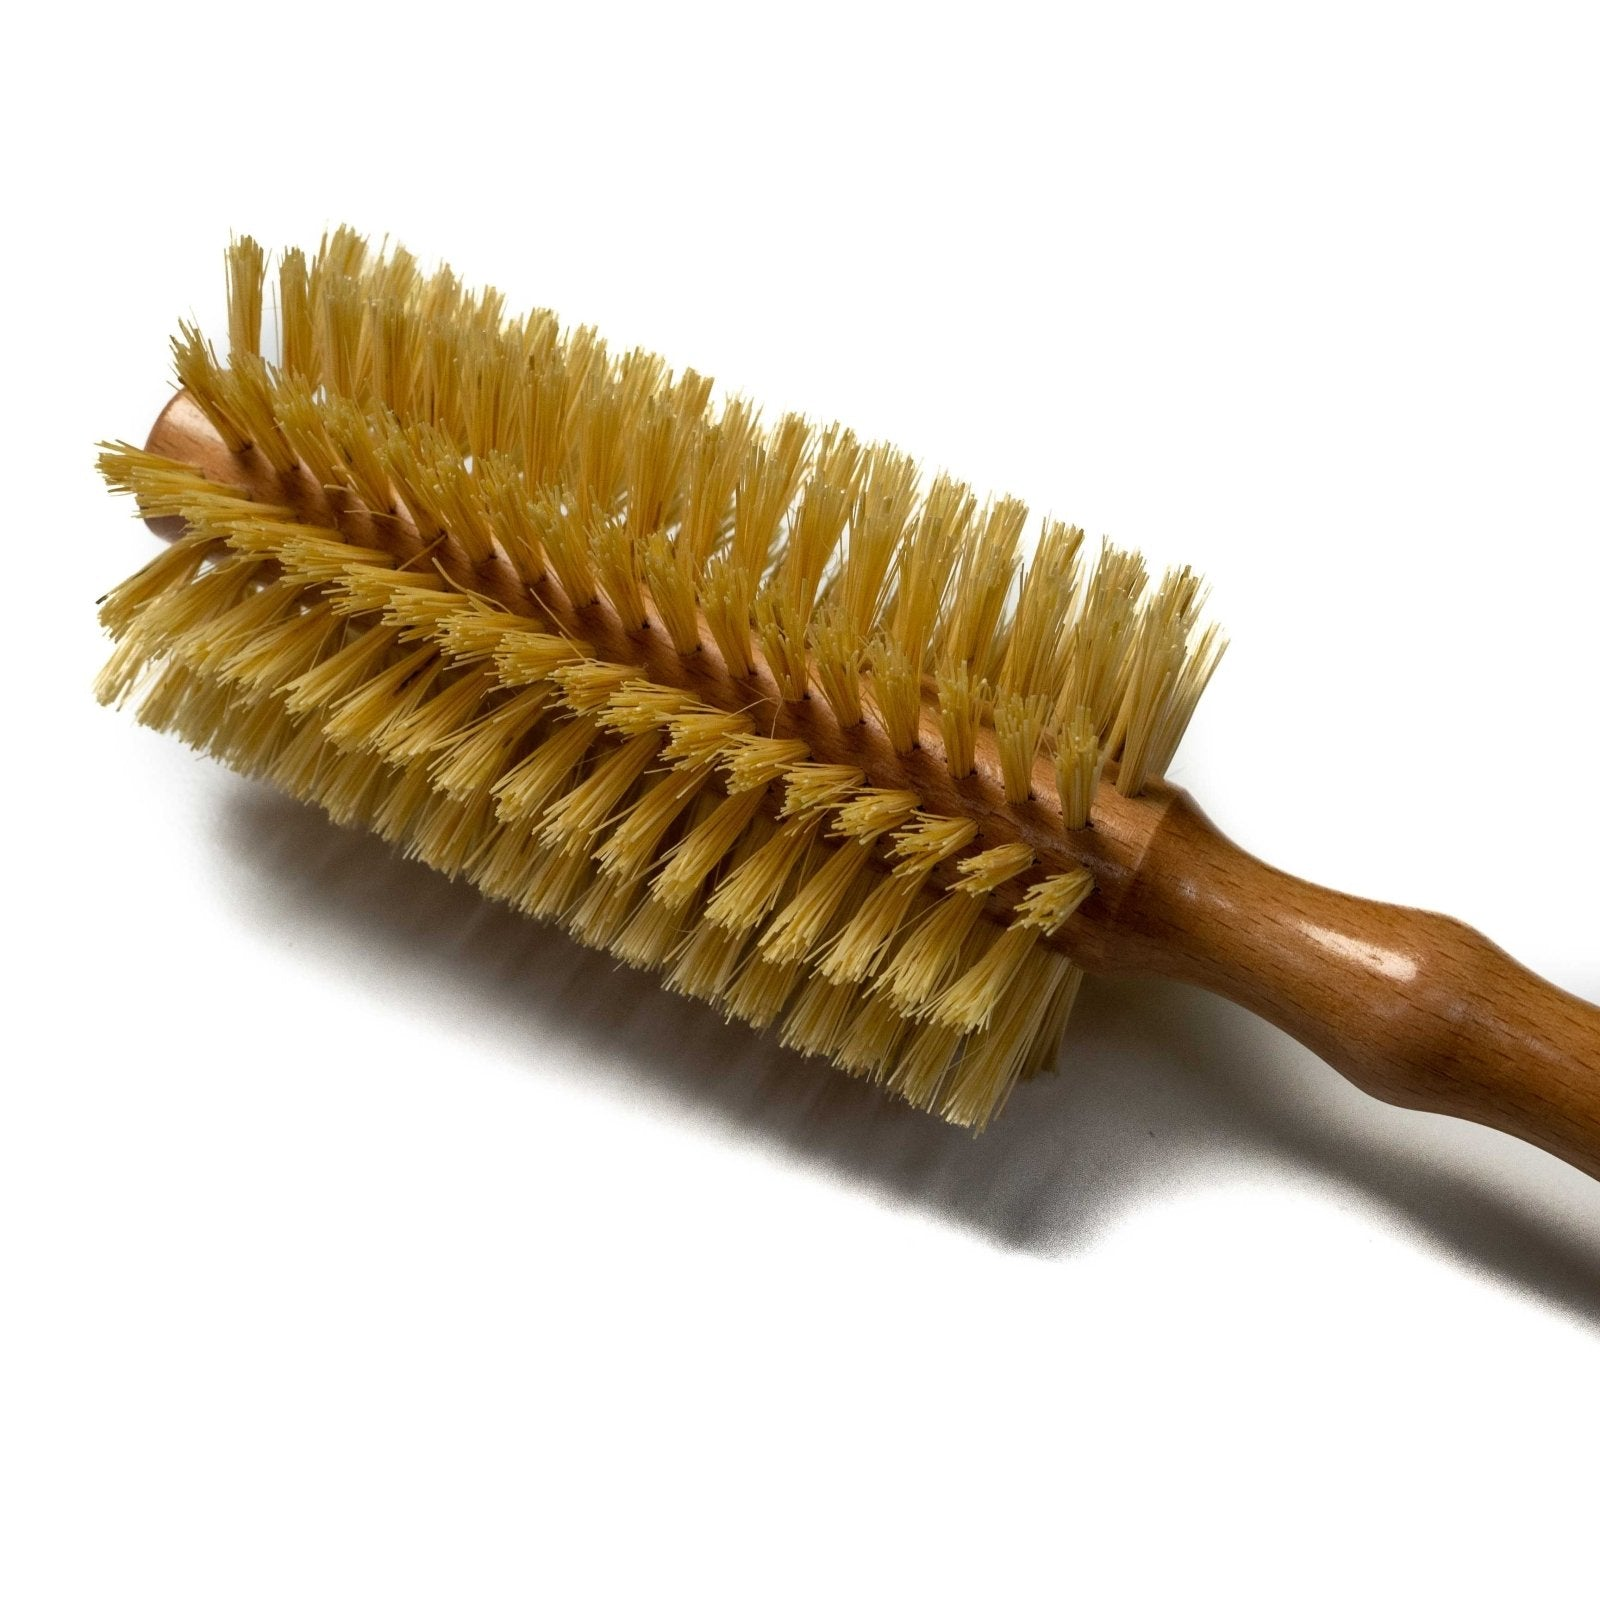 No-Kill 360° Byakugan Hair Brush - Halal | Kosher | Vegan - Neter Gold - NTRGLD - NETER GOLD - All natural body care products designed to increase your natural godly glow. - hair growth - eczema - dry skin